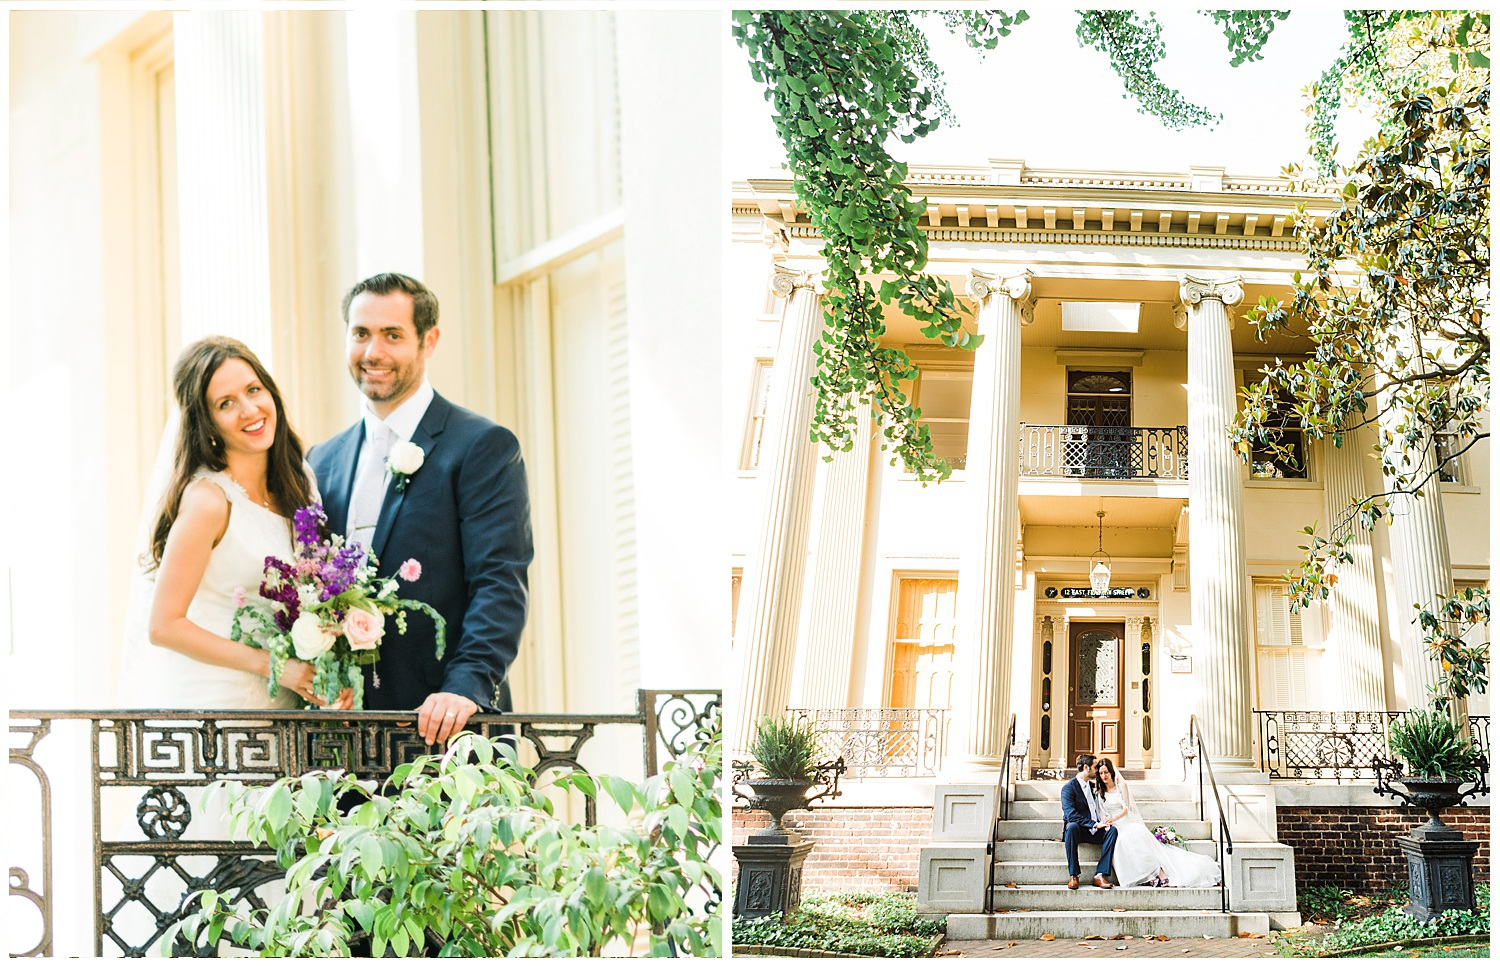 Garden Club of Virginia Wedding Photos | Richmond Wedding Photographer